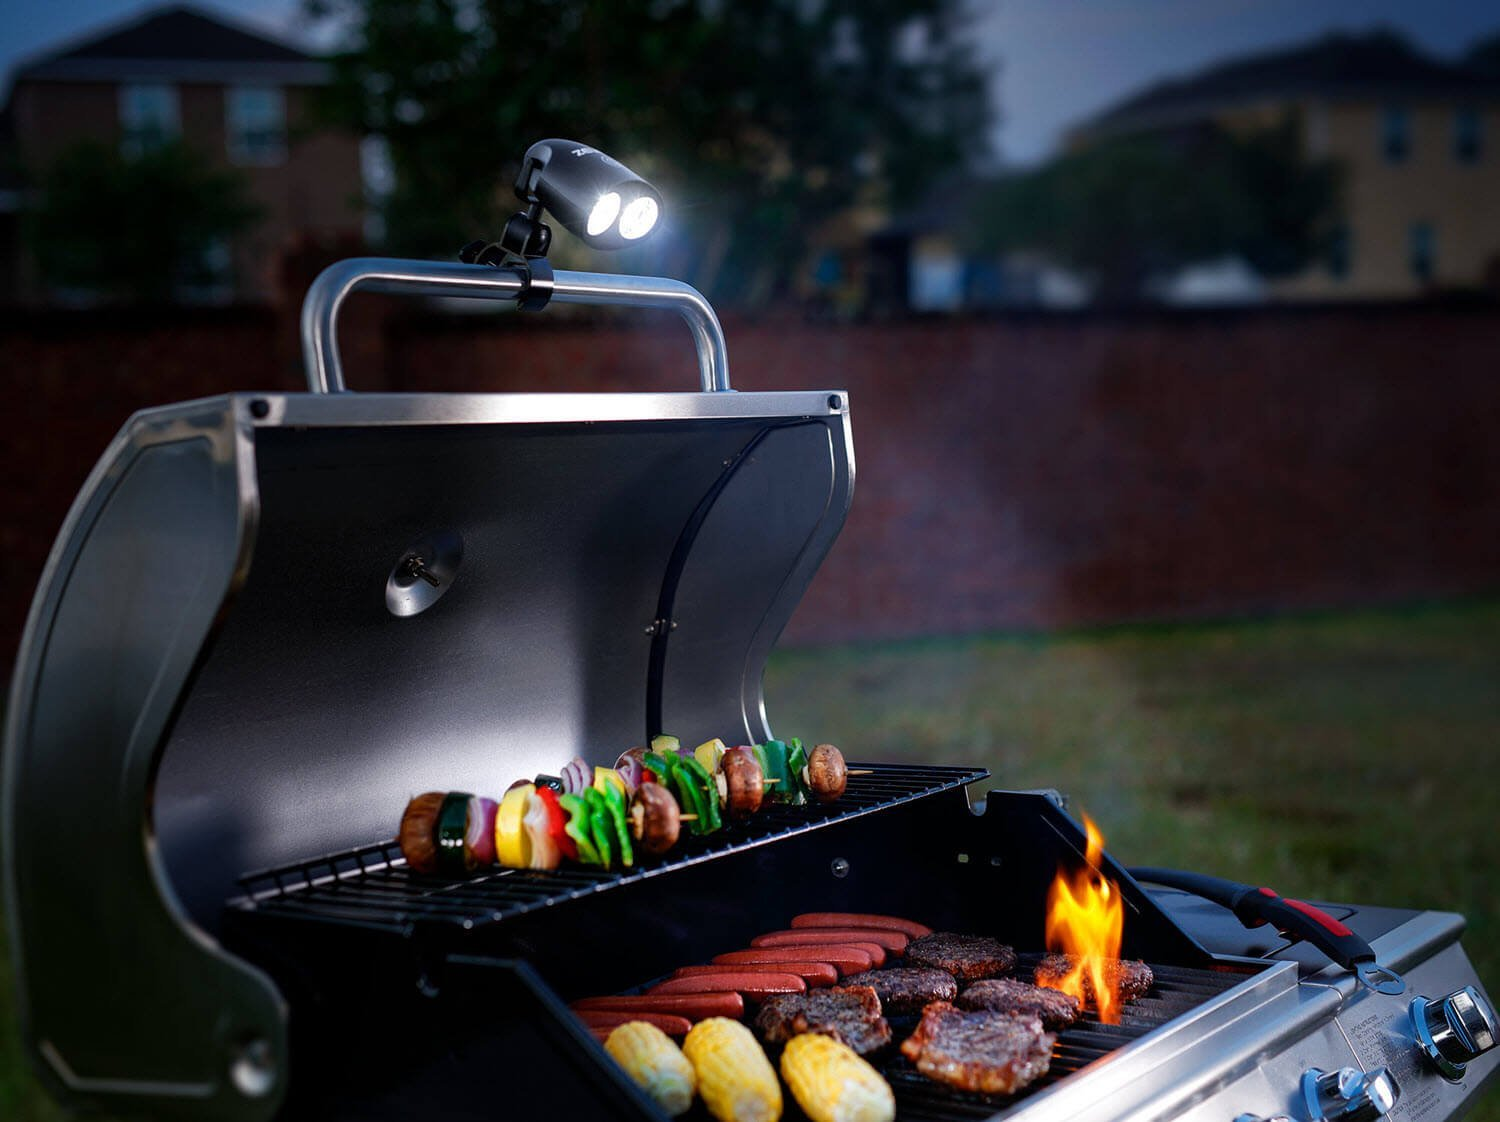 1 barbecue grill light with 10 super bright led lights durable 1 barbecue grill light with 10 super bright led lights durable weather resistant aloadofball Gallery